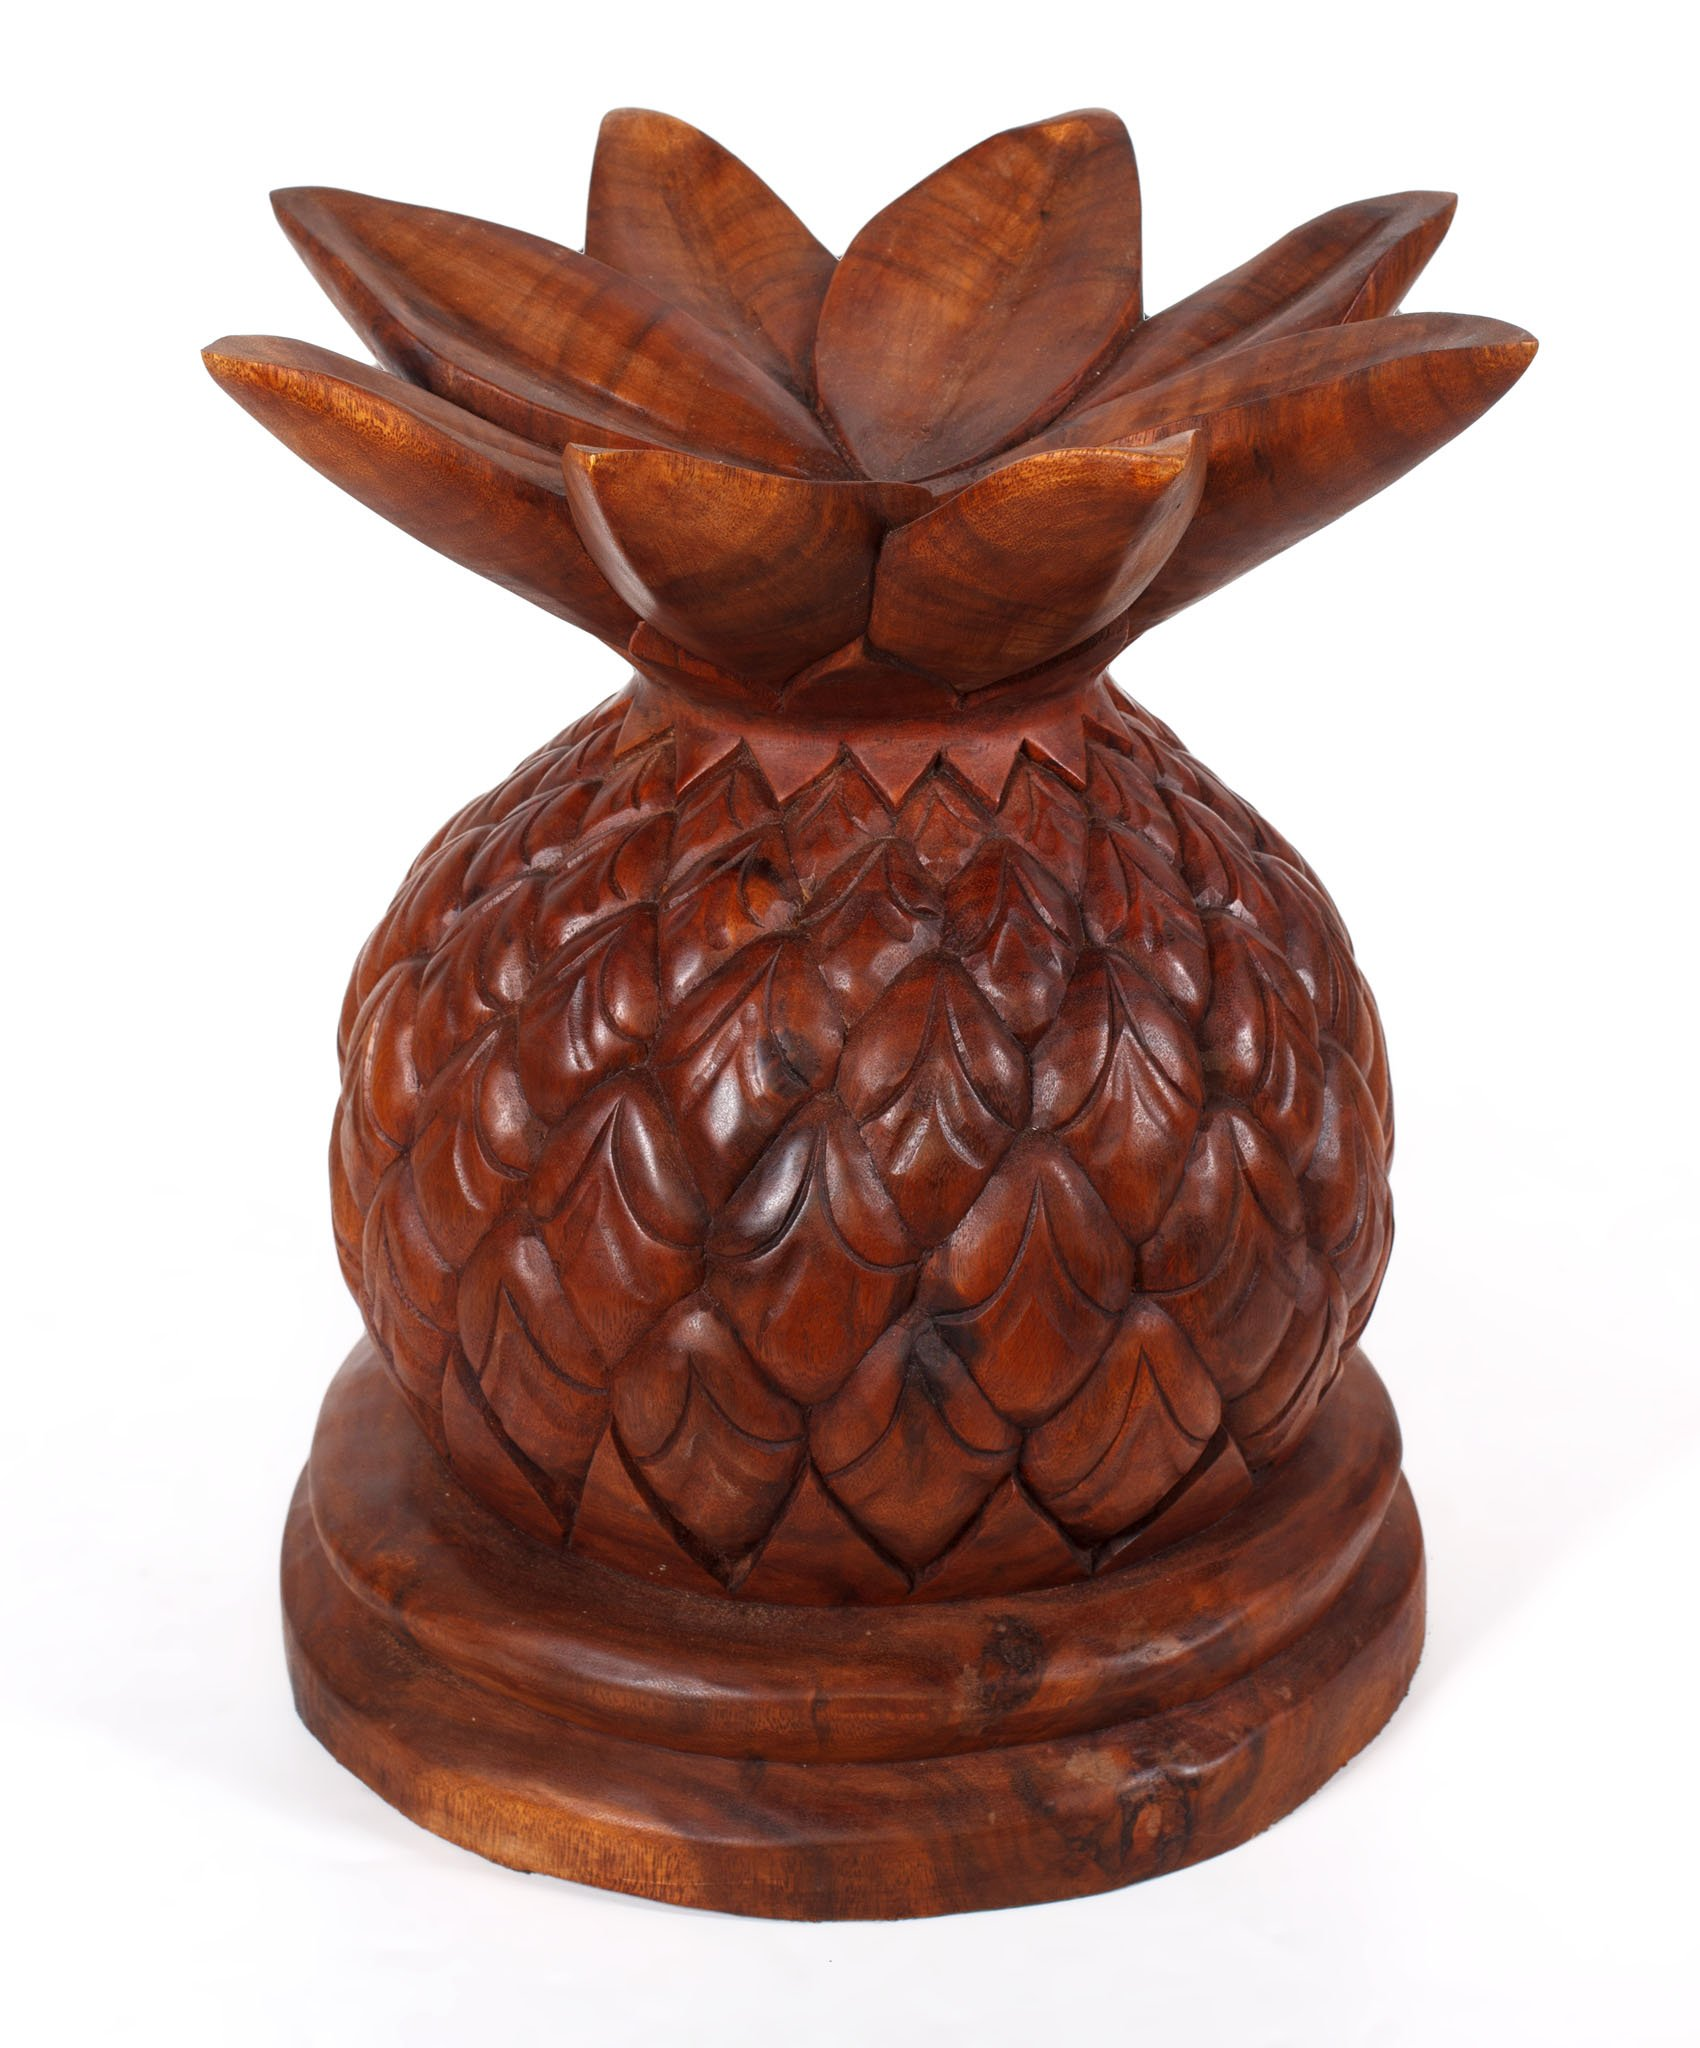 Hawaii Style - Carvings PINEAPPLE-TABLE